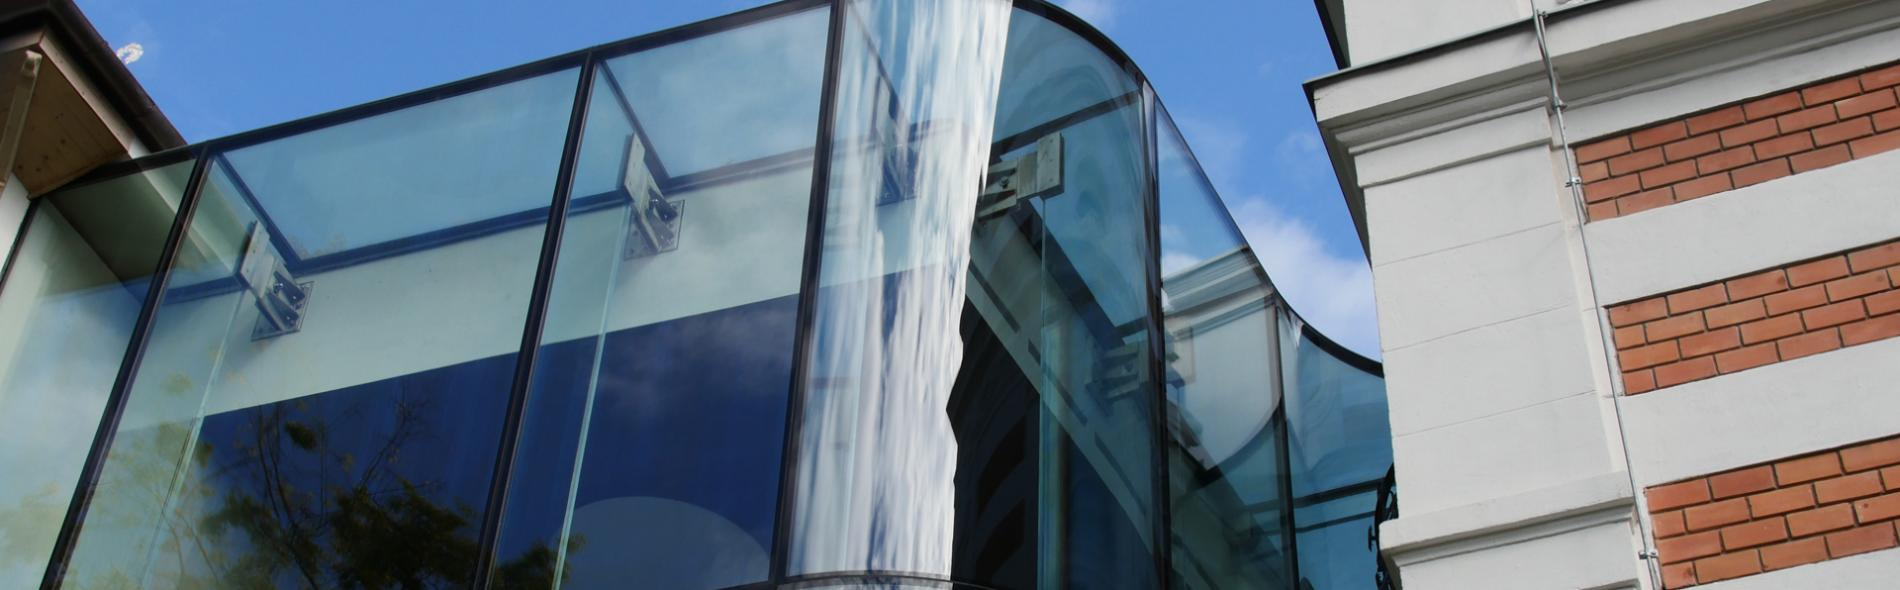 Structural Glass Facade with Glass Fins - Bespoke Frameless System with Oversized Glass